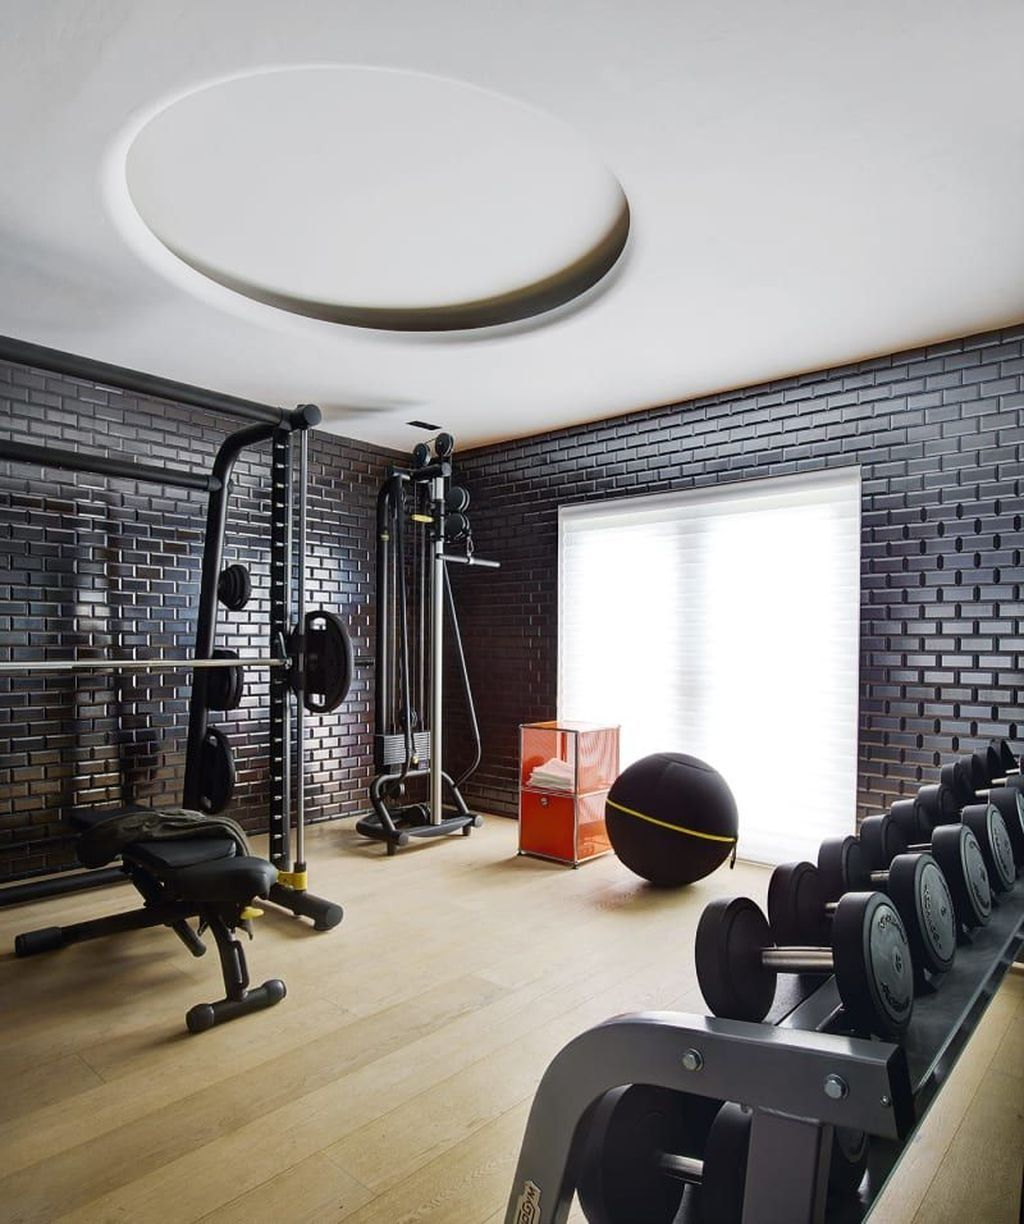 20 Outstanding Home Gym Room Design Ideas For Inspiration In 2020